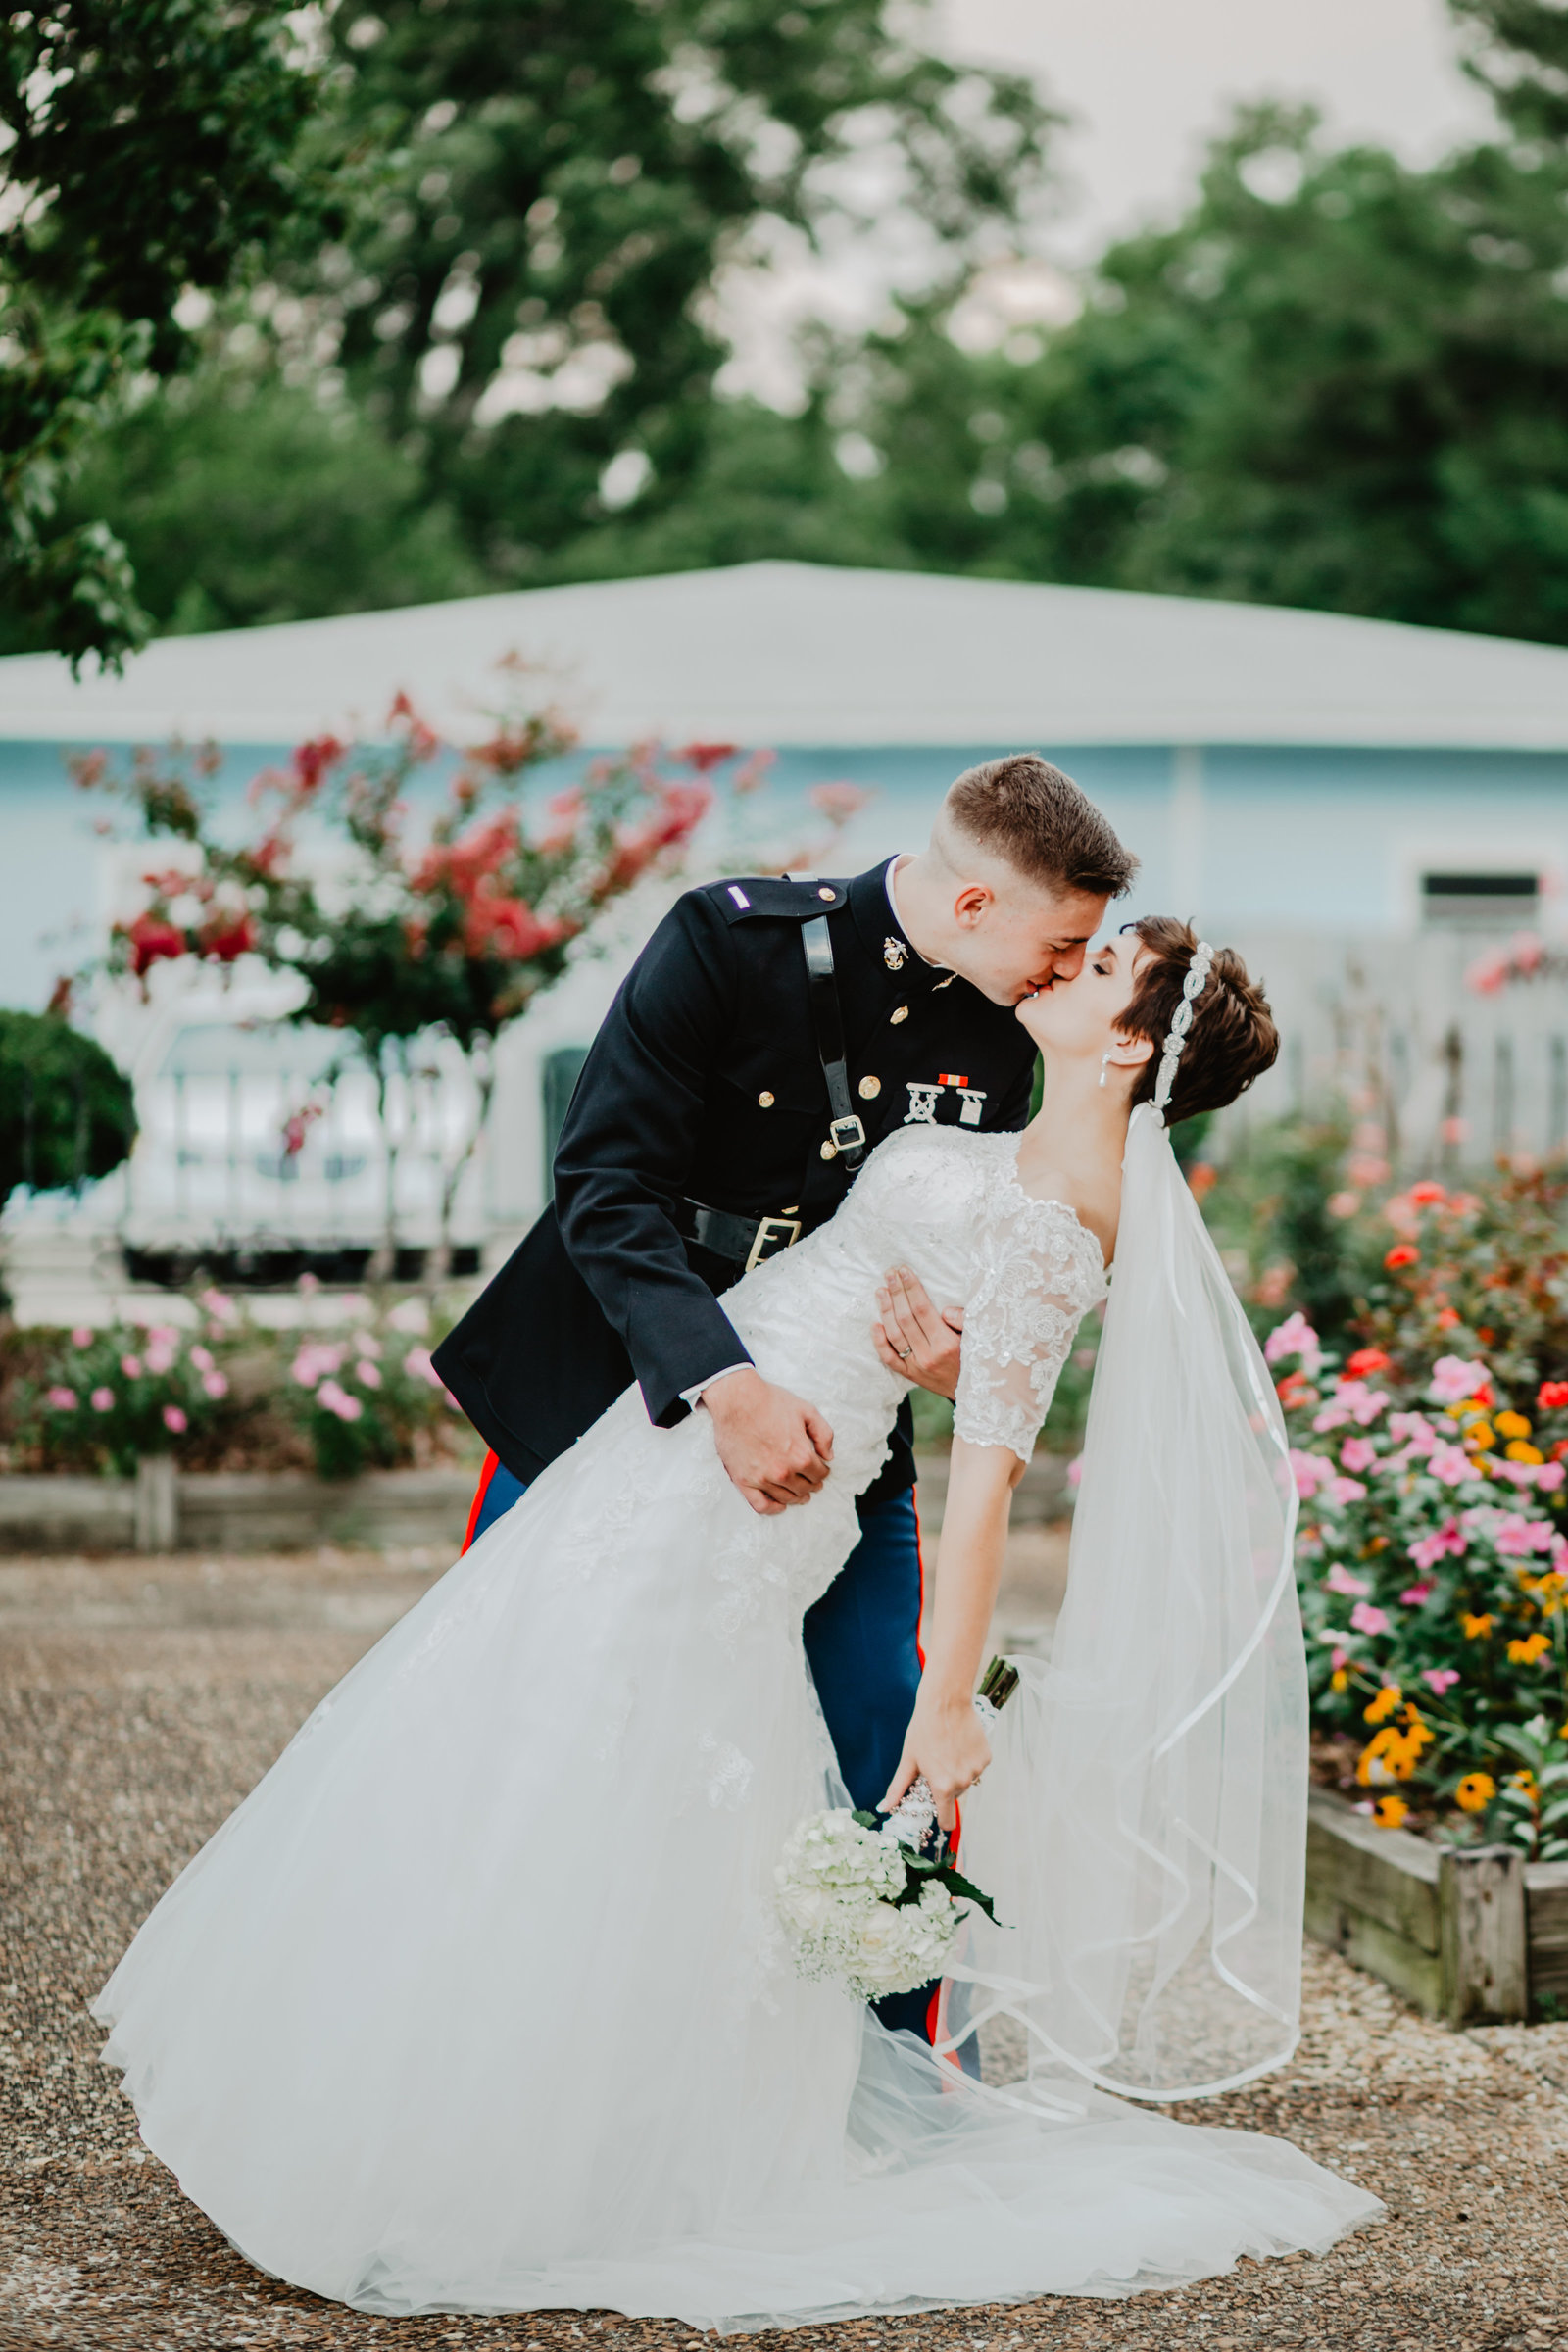 In military uniform Groom dips his Bride for a kiss.